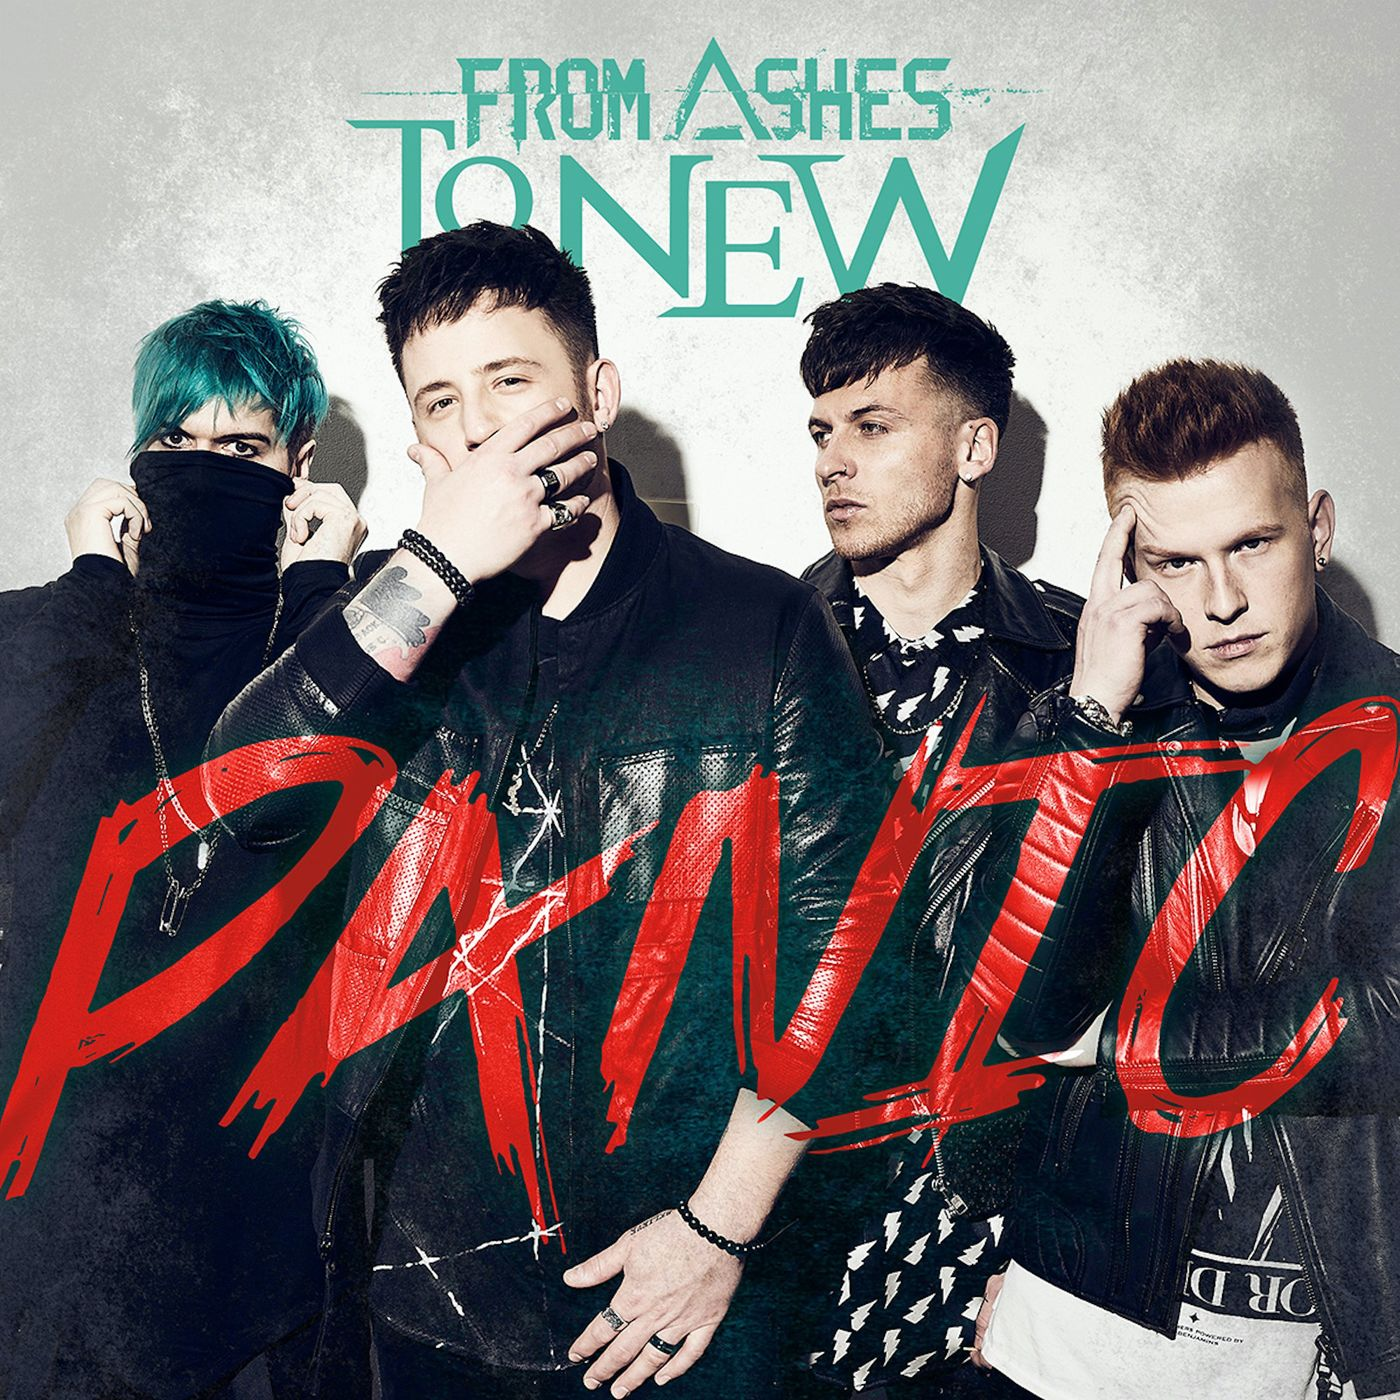 From Ashes To New - What I Get [single] (2020)